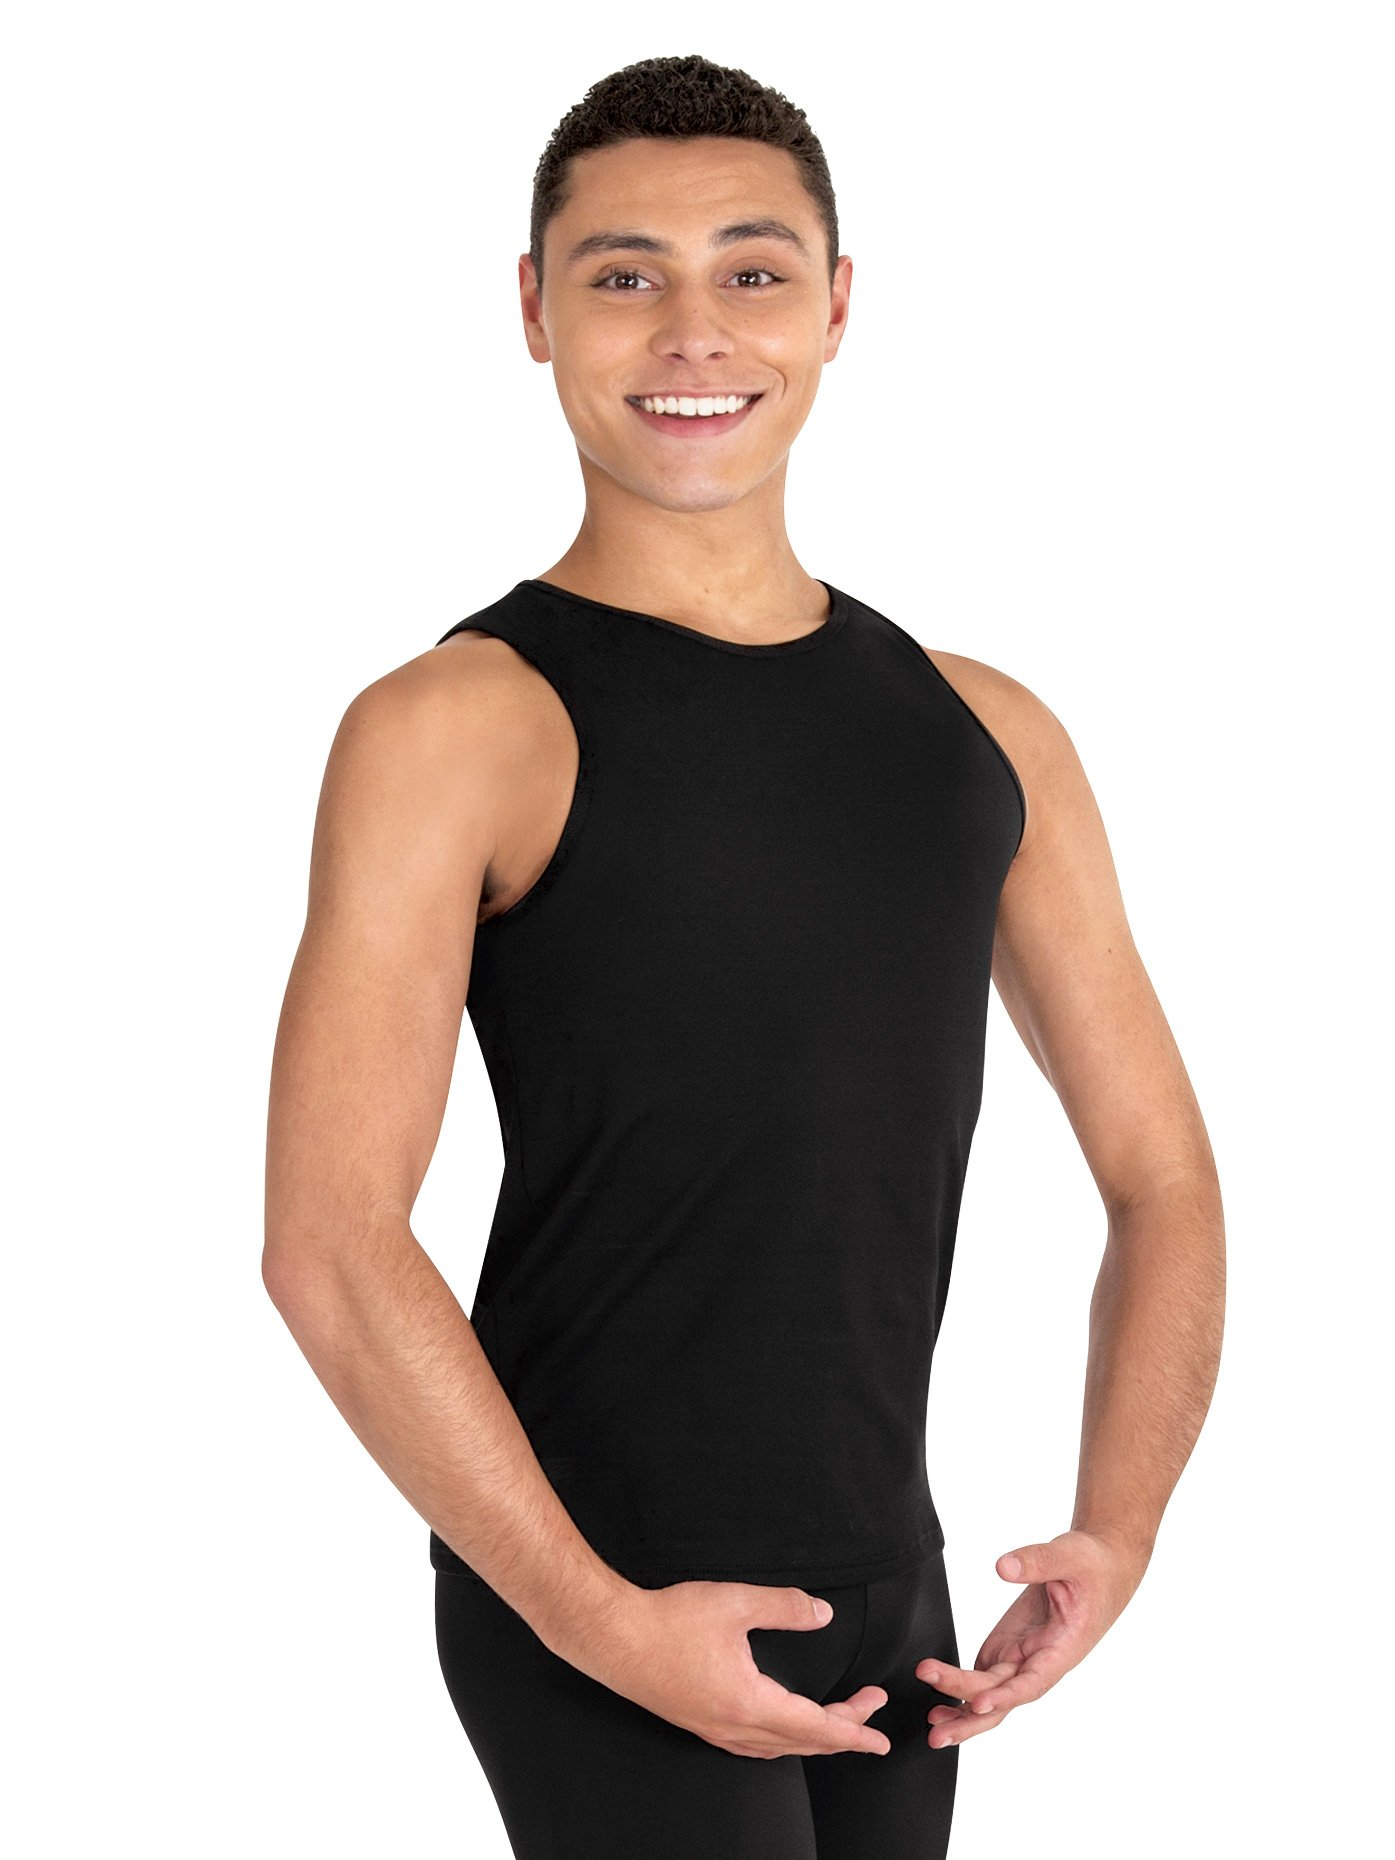 Boys ProWear Tank Top,B407BLKXL,Black,XL by Body Wrappers